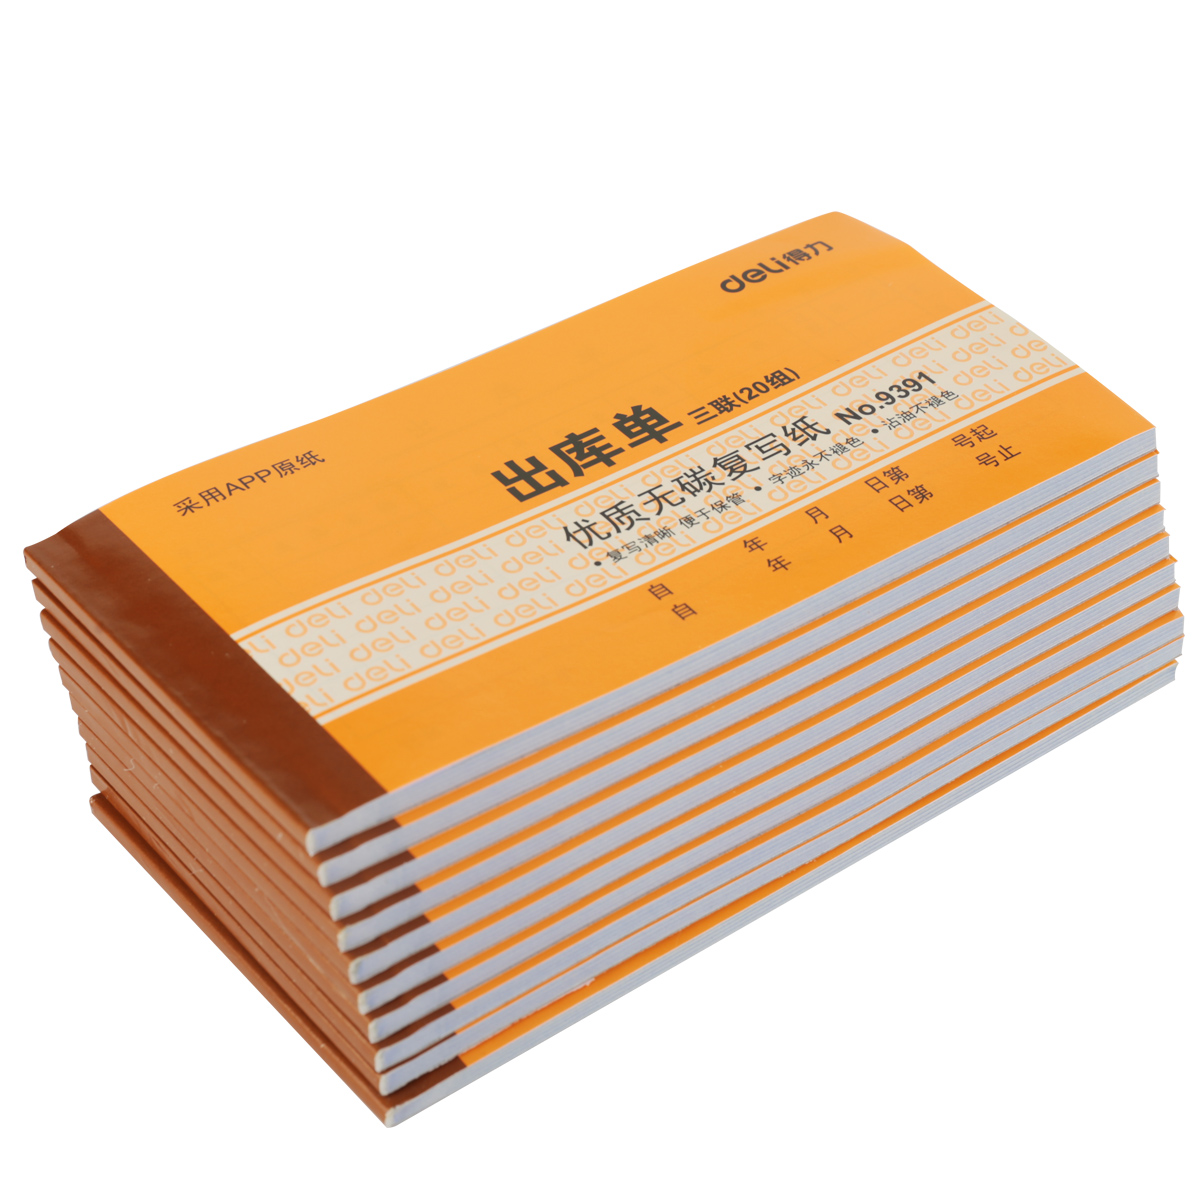 Deli deli outstockroom triple shippers bivalent storehouse warehouse receipts carbonless handwritten 9391